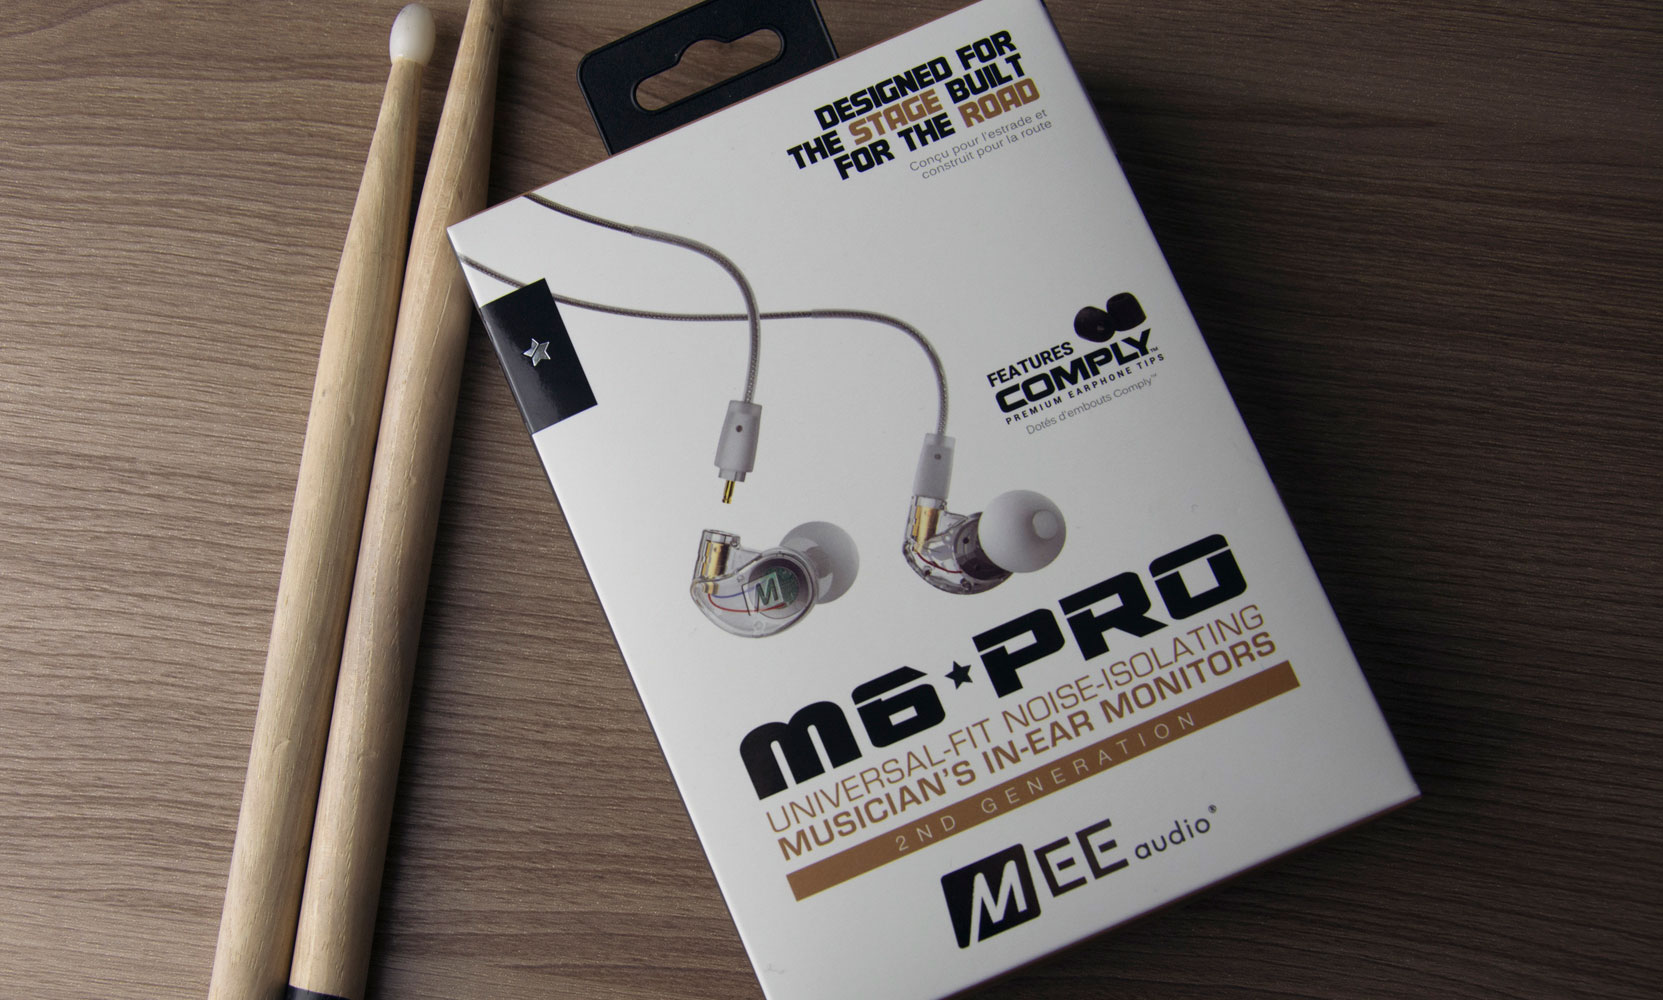 Mee Audio M6 Pro 2nd Generation Universal Noise Isolating Musicians European Electrical Plug Wiring Schematic Also Headphone Color Stereo Headset Cable Carrying Case Comply Memory Foam Eartips Silicone 6 Pairs Shirt Clips 2 63mm Adapter User Manual